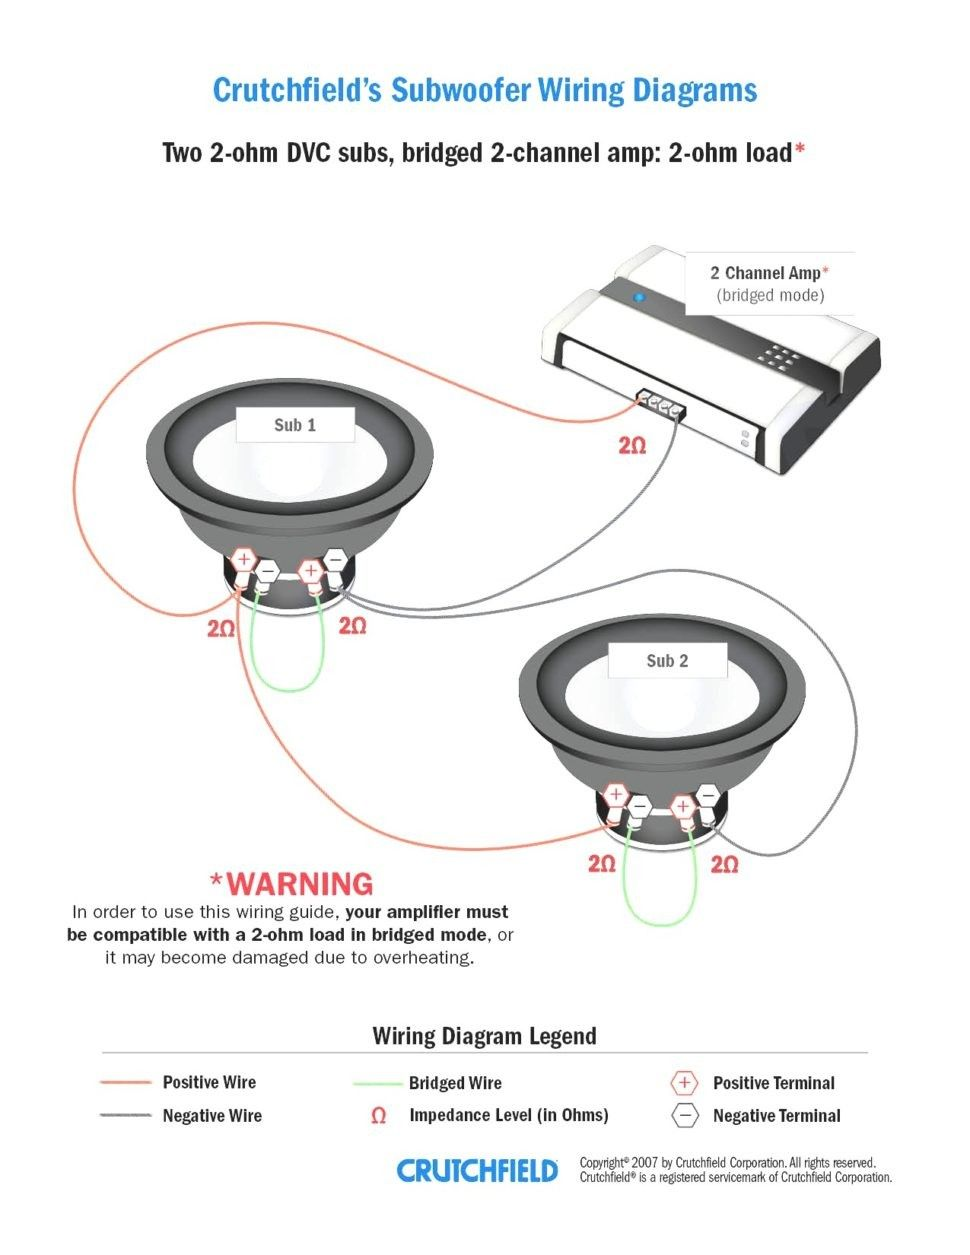 Pleasant Subwoofer Wiring Diagrams Dual Voice Coil Free Diagram For 1 Ohm Wiring Cloud Eachirenstrafr09Org